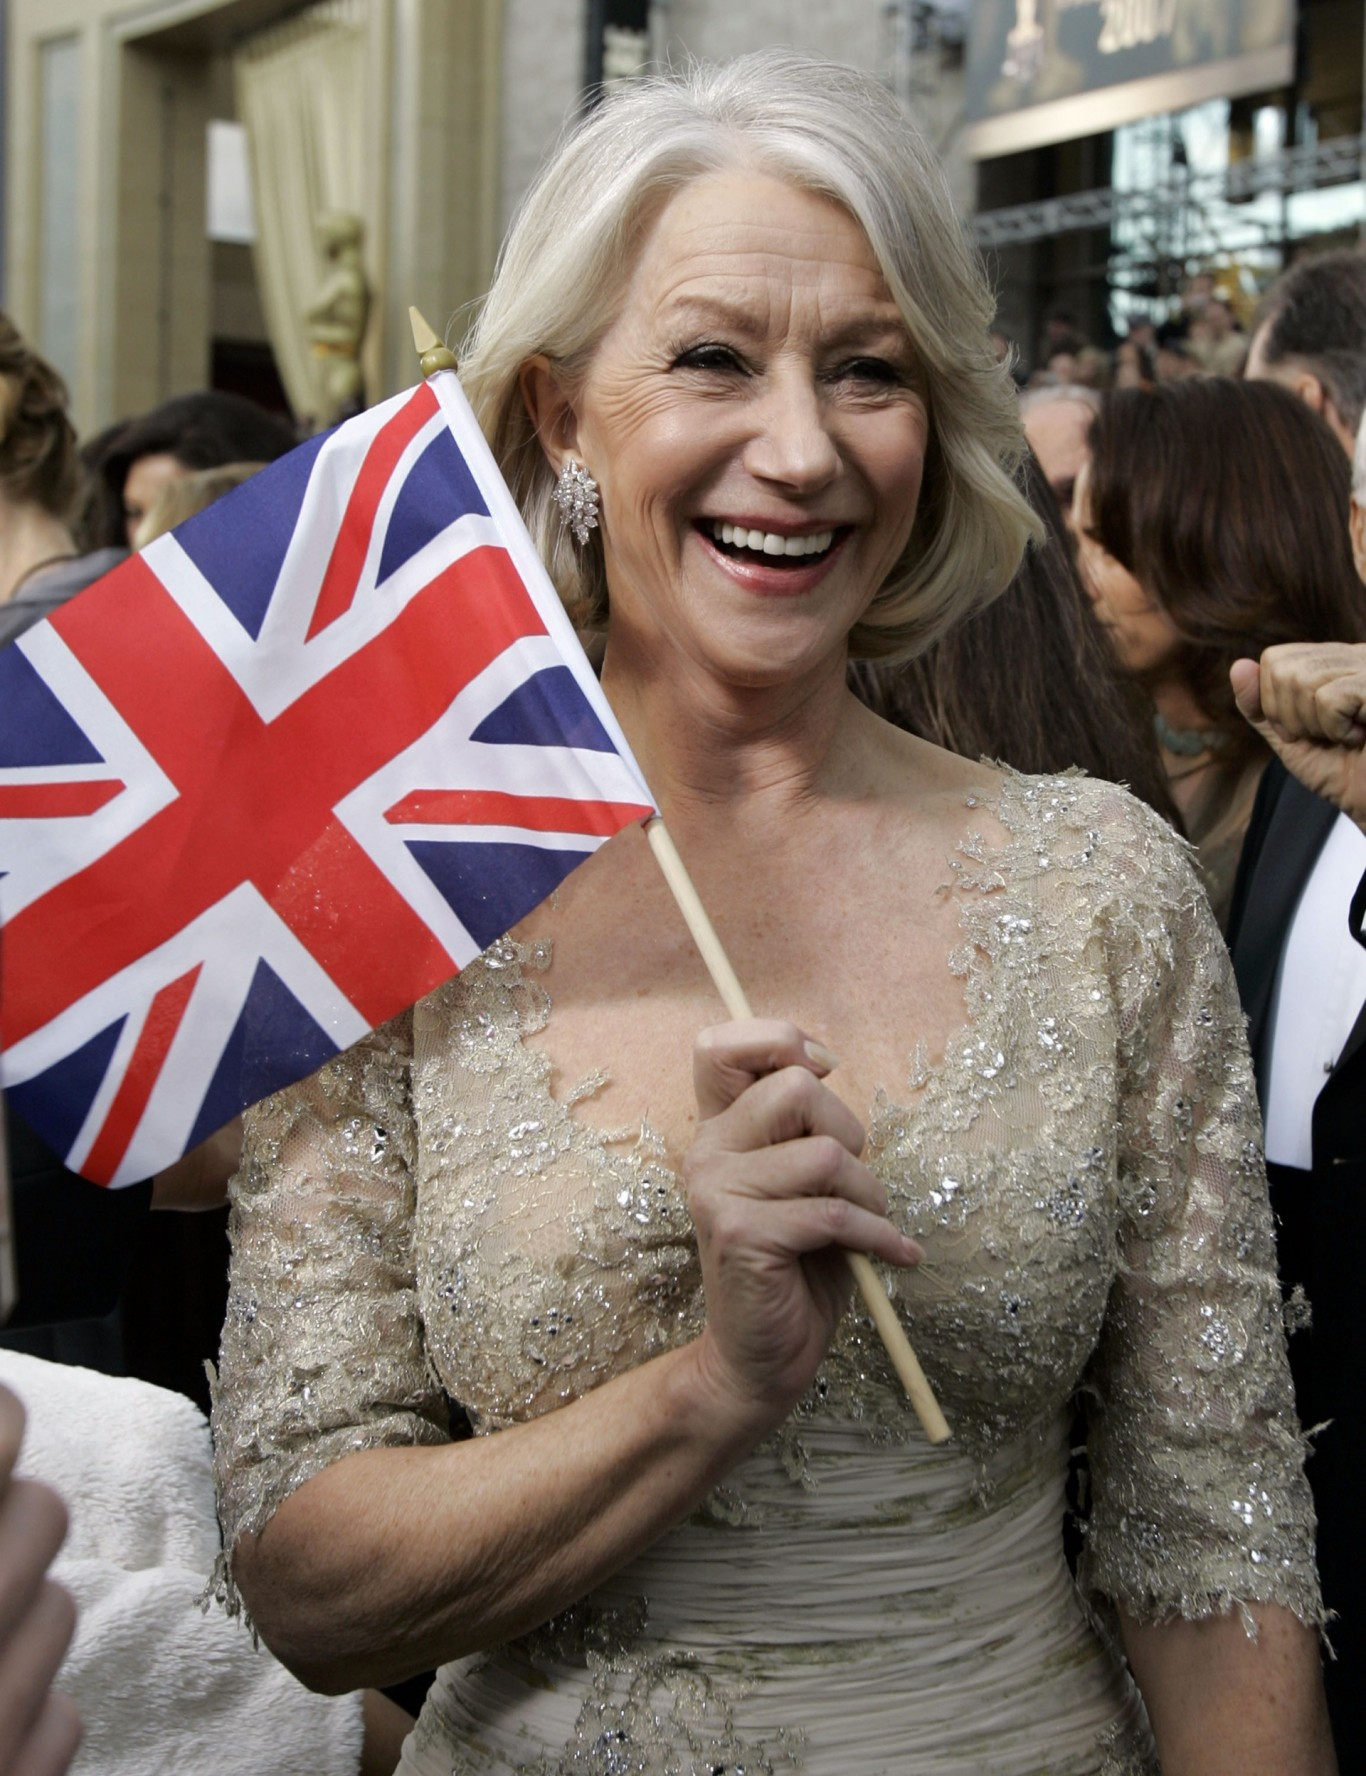 Helen Mirren waves a Union Jack flag on the red carpet at the 2007 Oscars